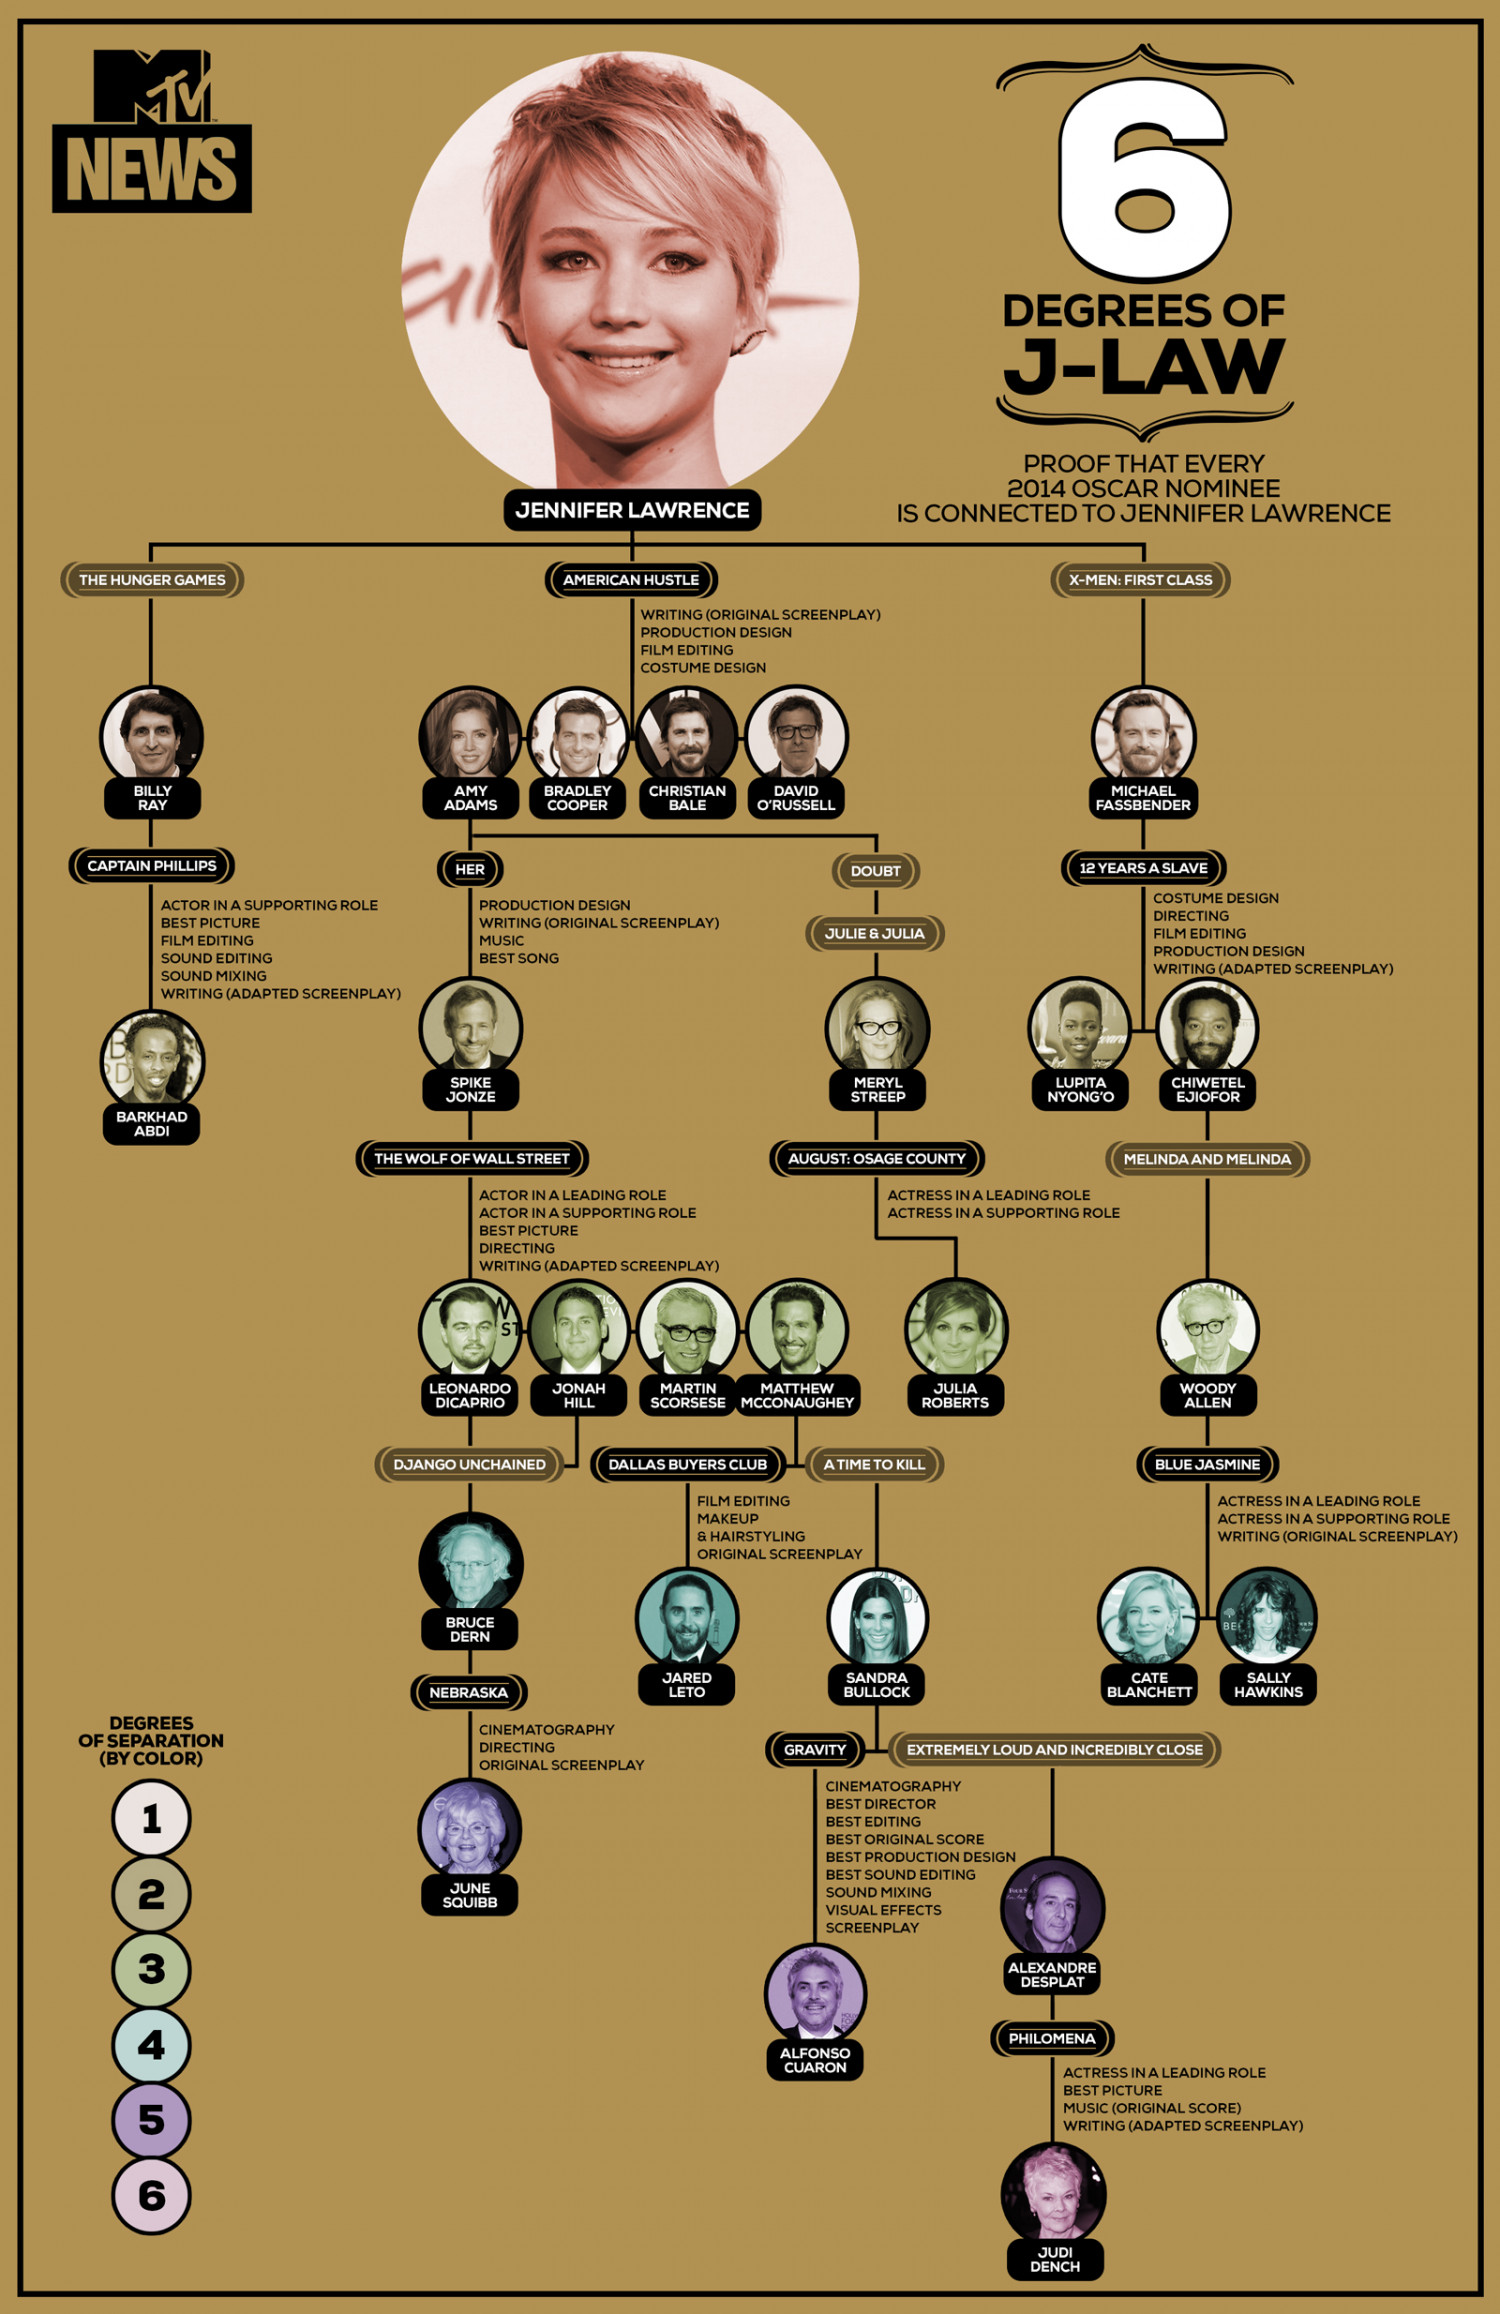 6 Degrees Of J-Law Infographic